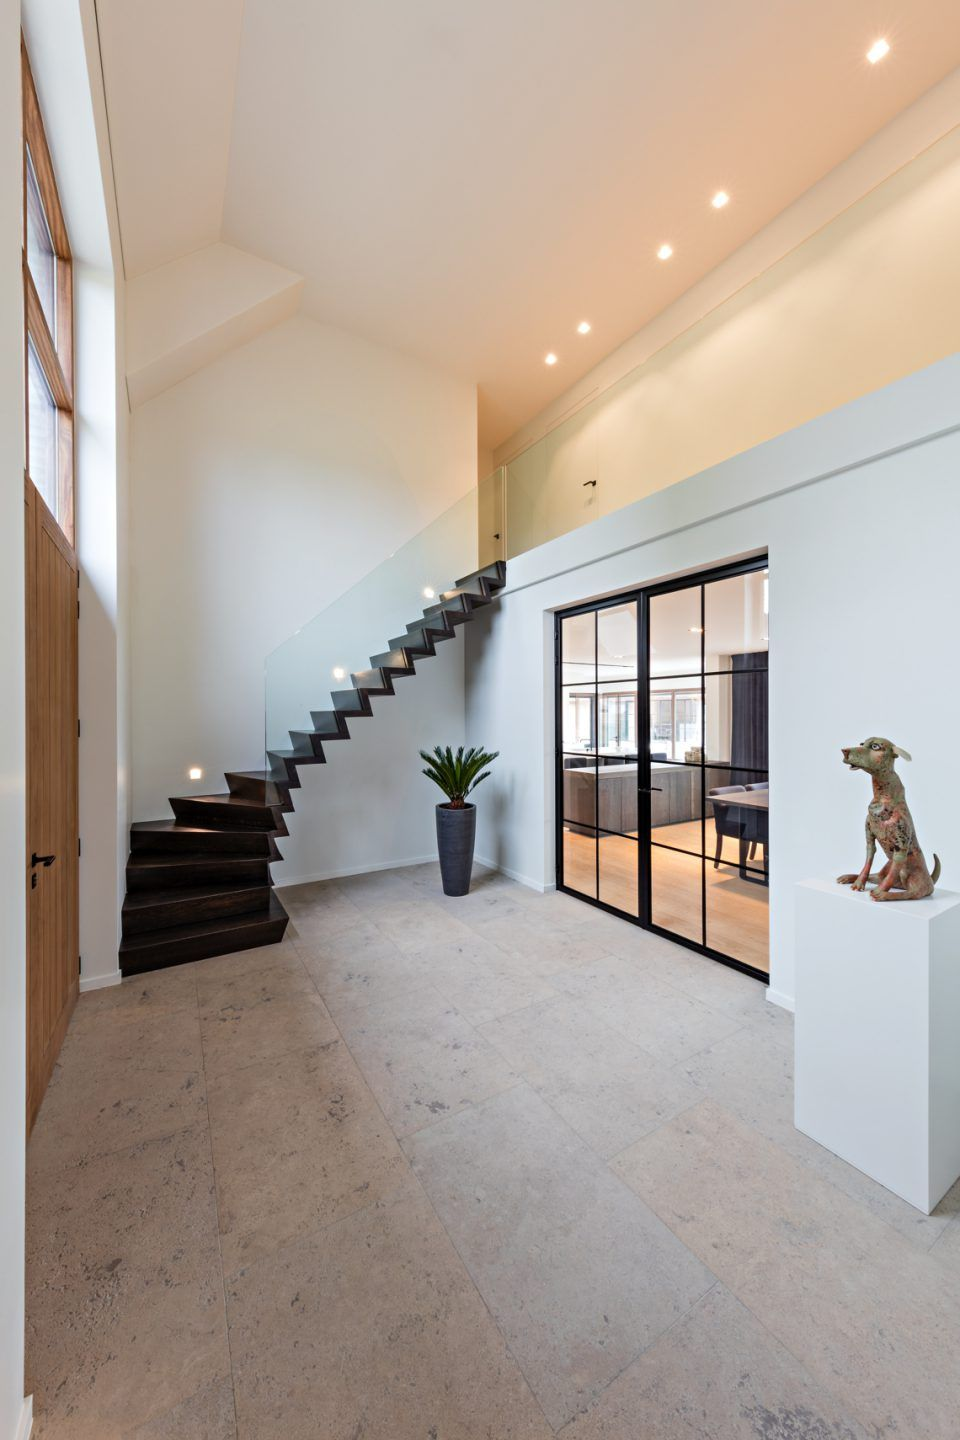 ABC Projects | Interior architecture - Tijdloos project Diksmuide ...